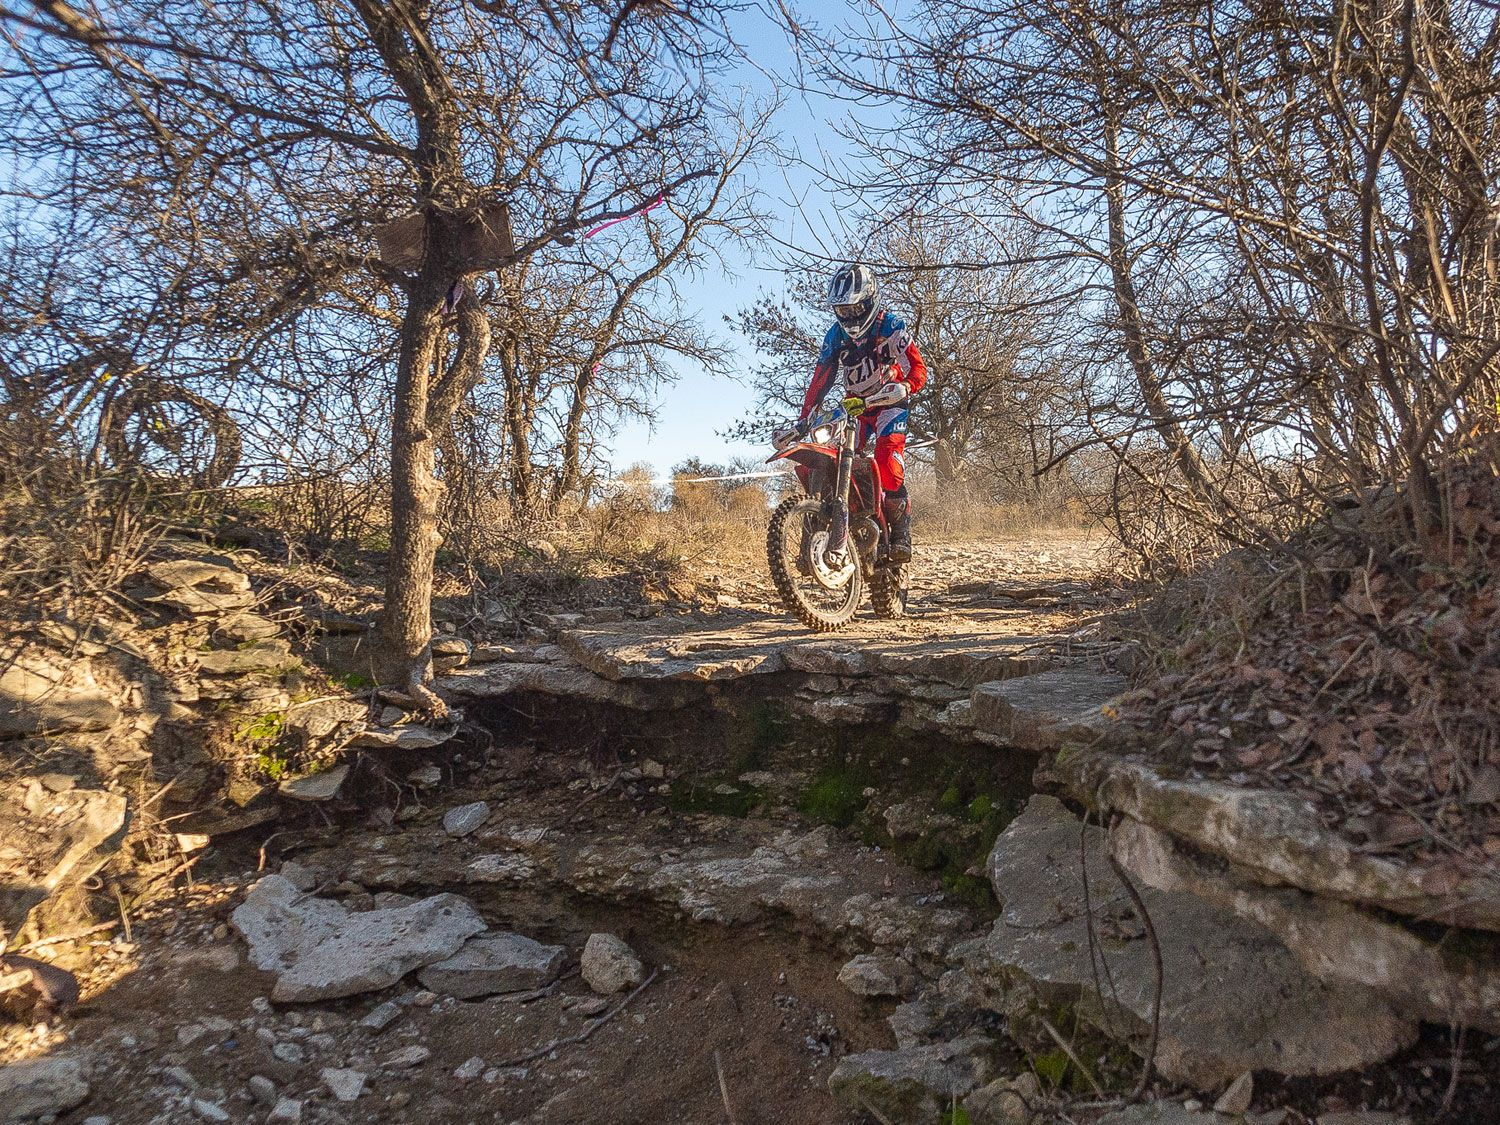 Beta USA's Max Gerston approaches a ledge at the 2019 Red Bull Override hard enduro race in Decatur, Texas. Because this drop-off has very little runout, he's using first or second gear for it.